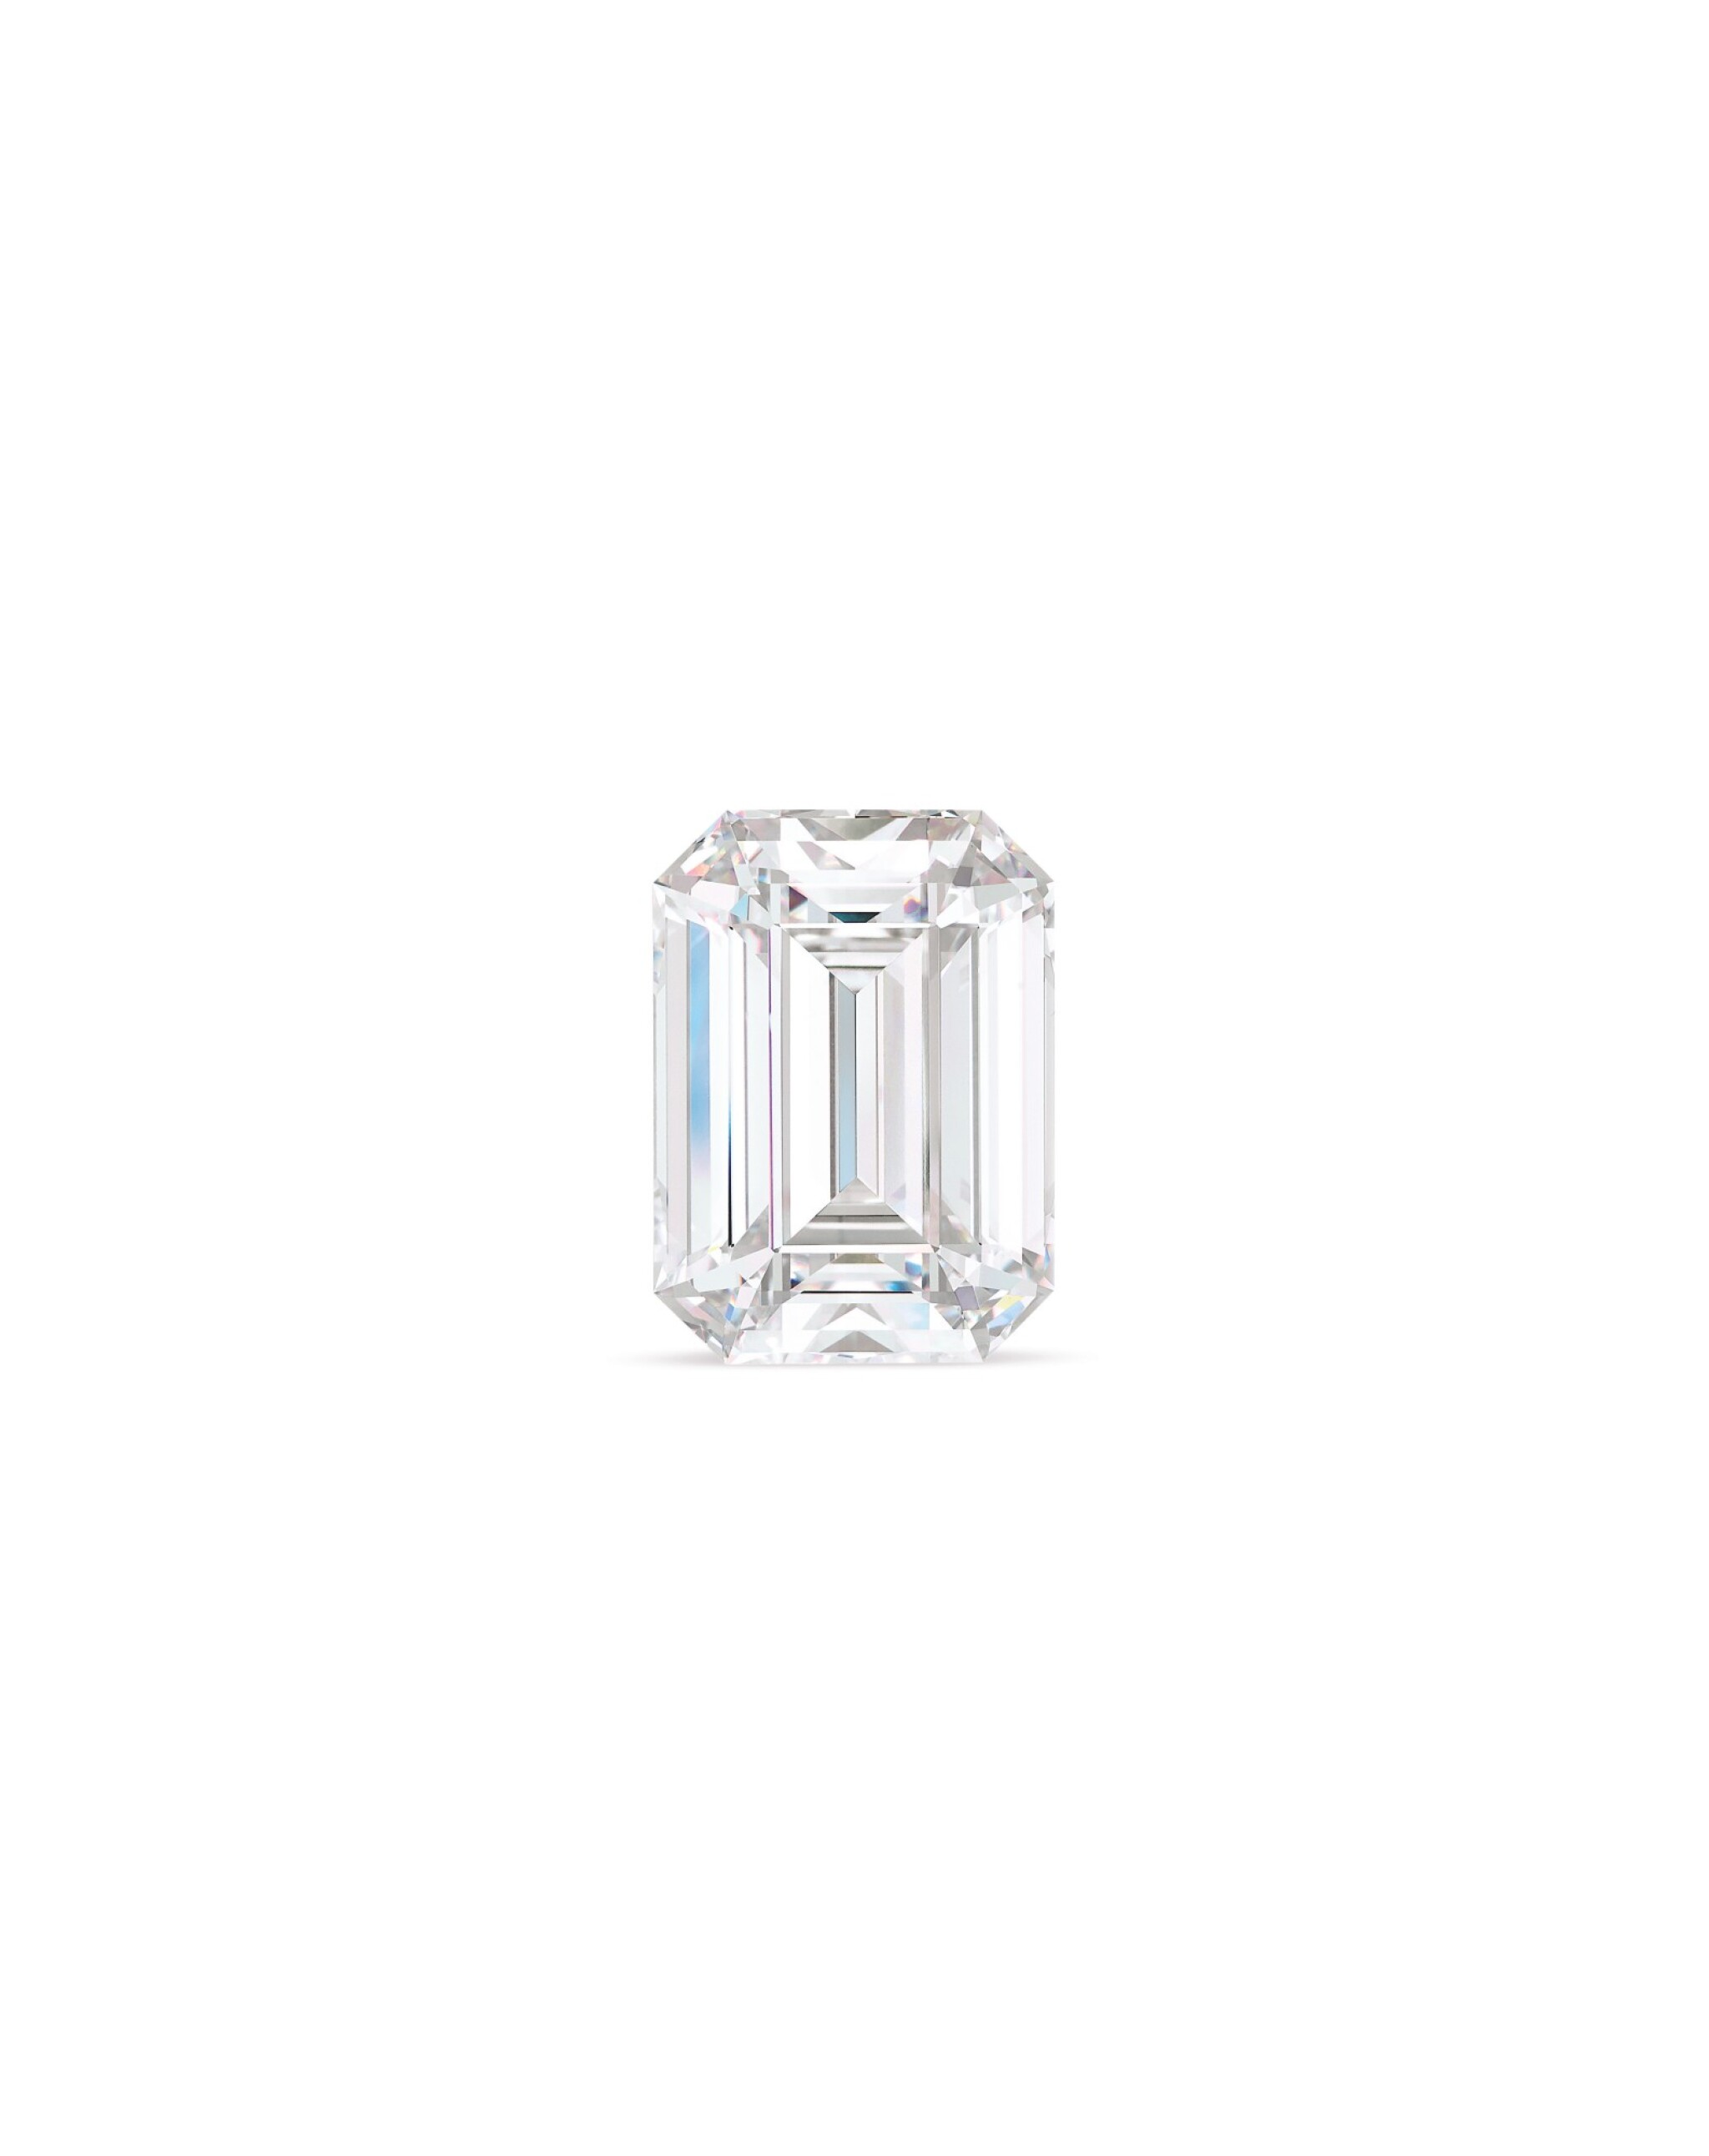 View full screen - View 1 of Lot 1764. An Exceptional Unmounted Diamond   39.88克拉 方形 D色 完美無瑕 鑽石.